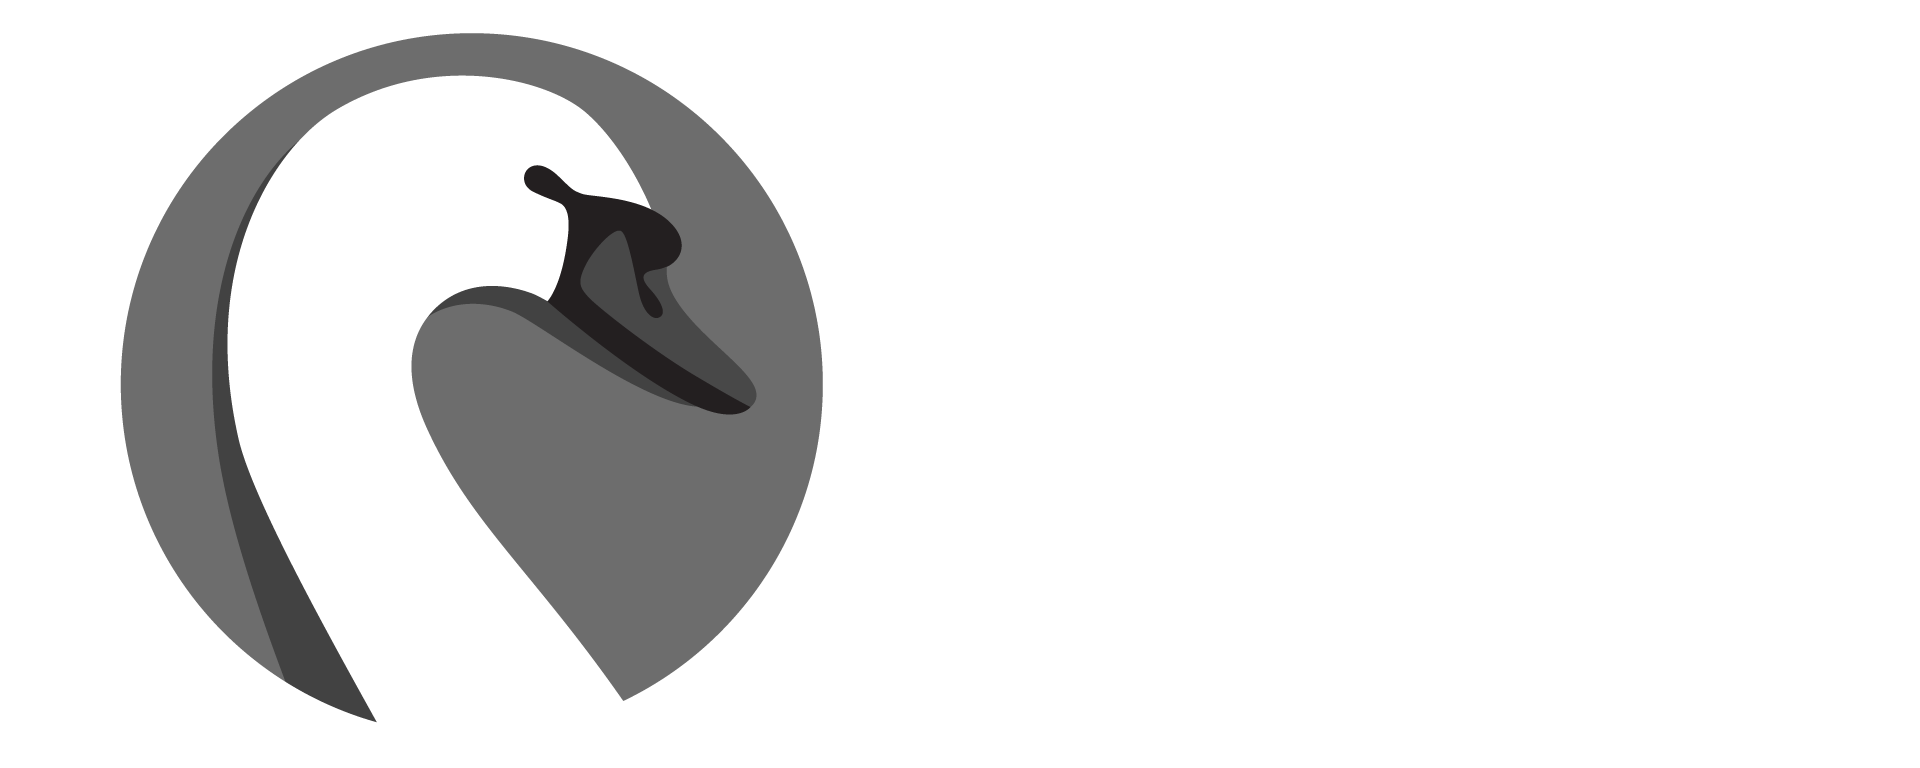 SWAN Library Services text and logo transparent background.png